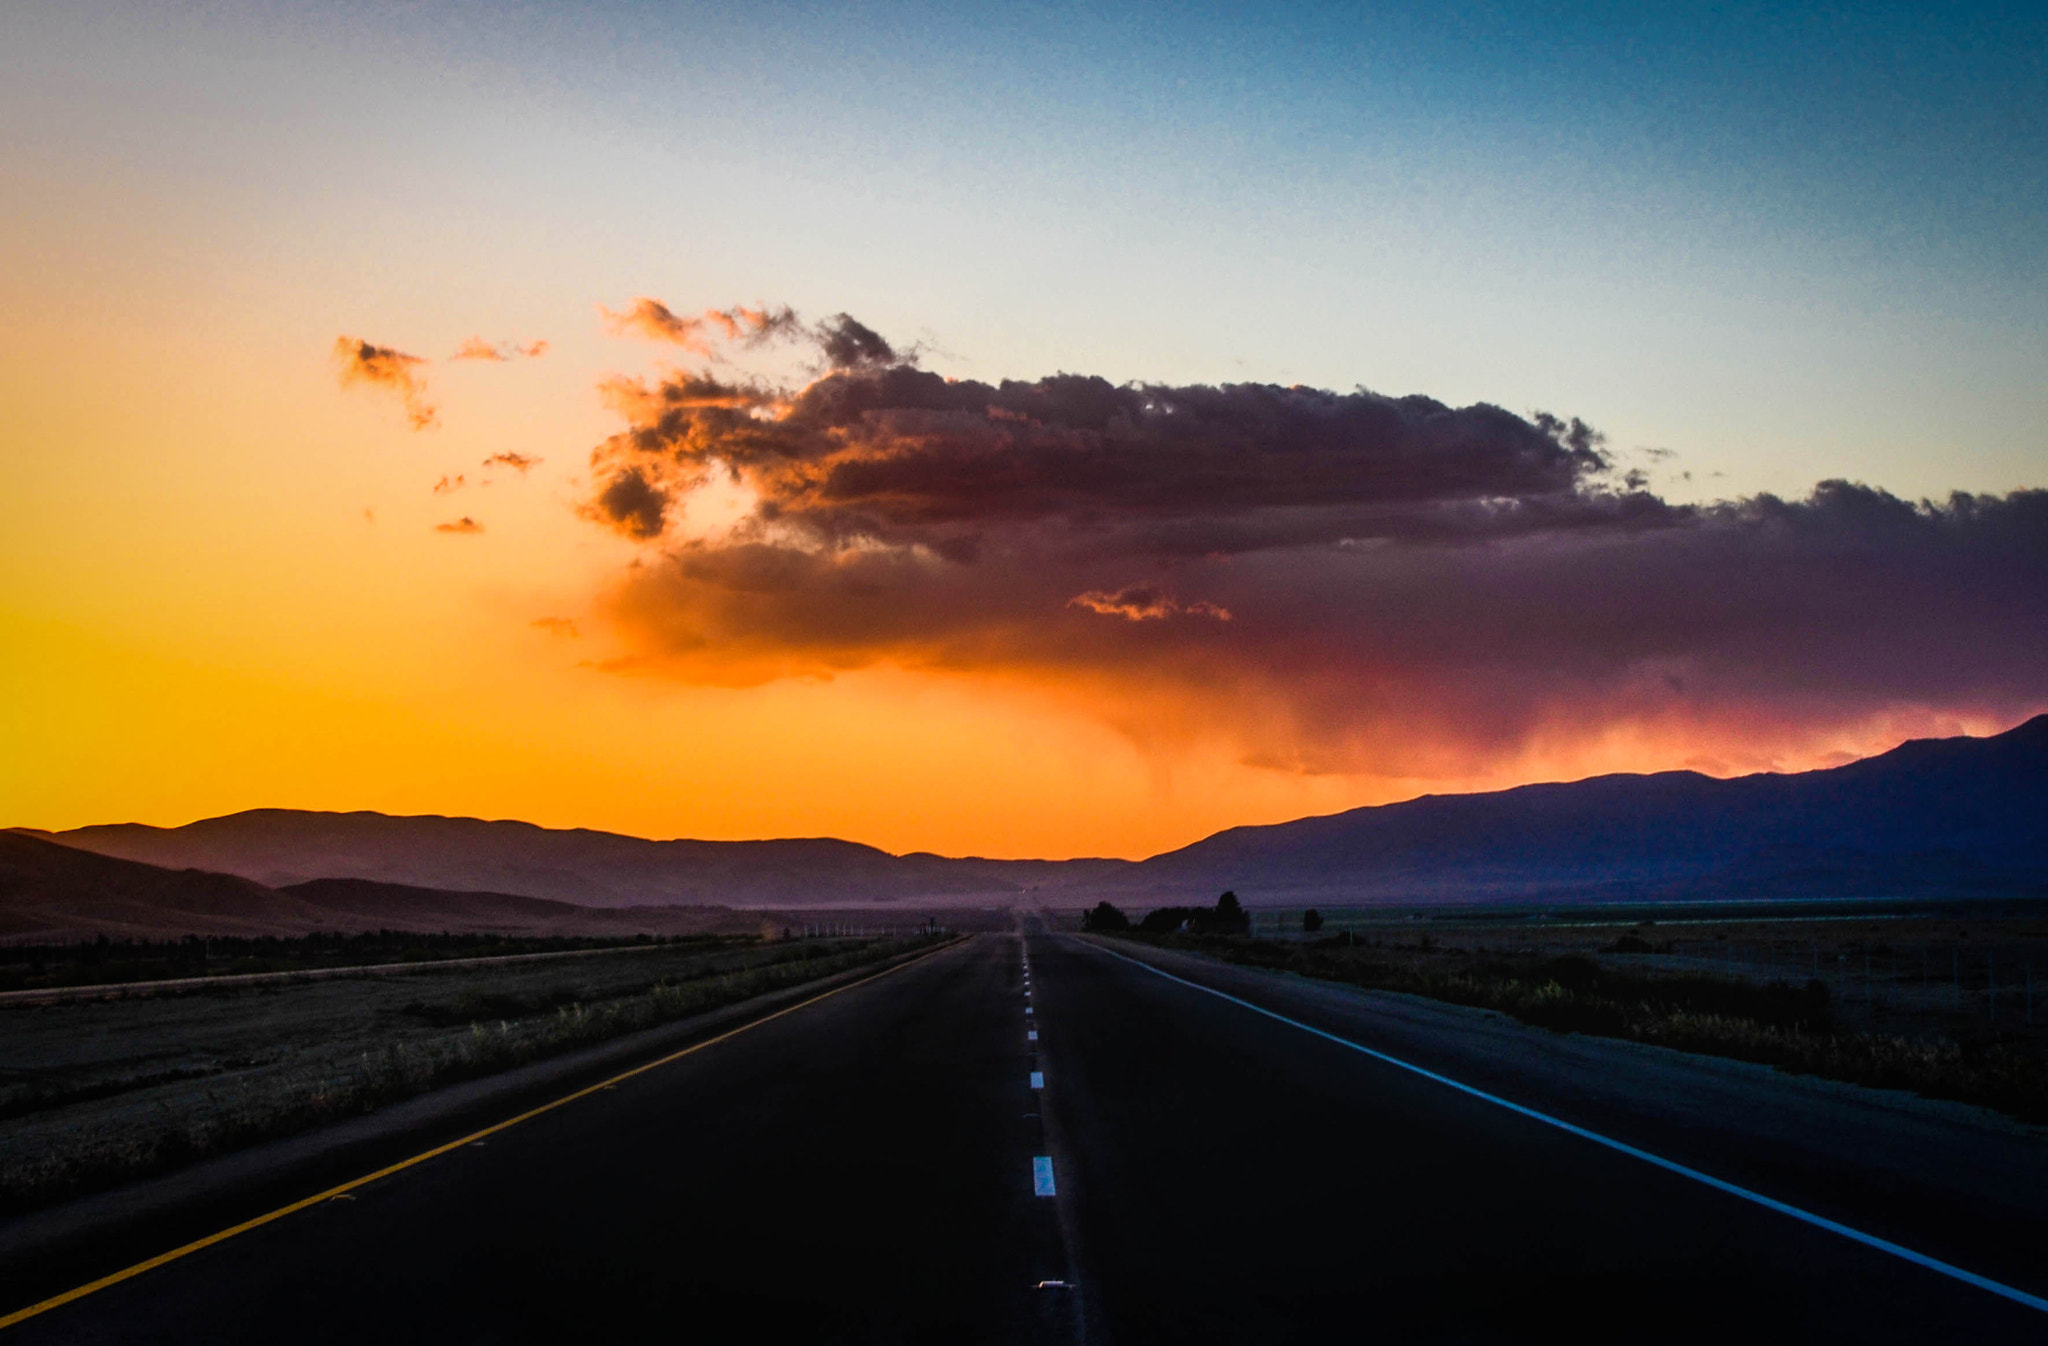 Photograph The Lonely Road by Alison Williams on 500px